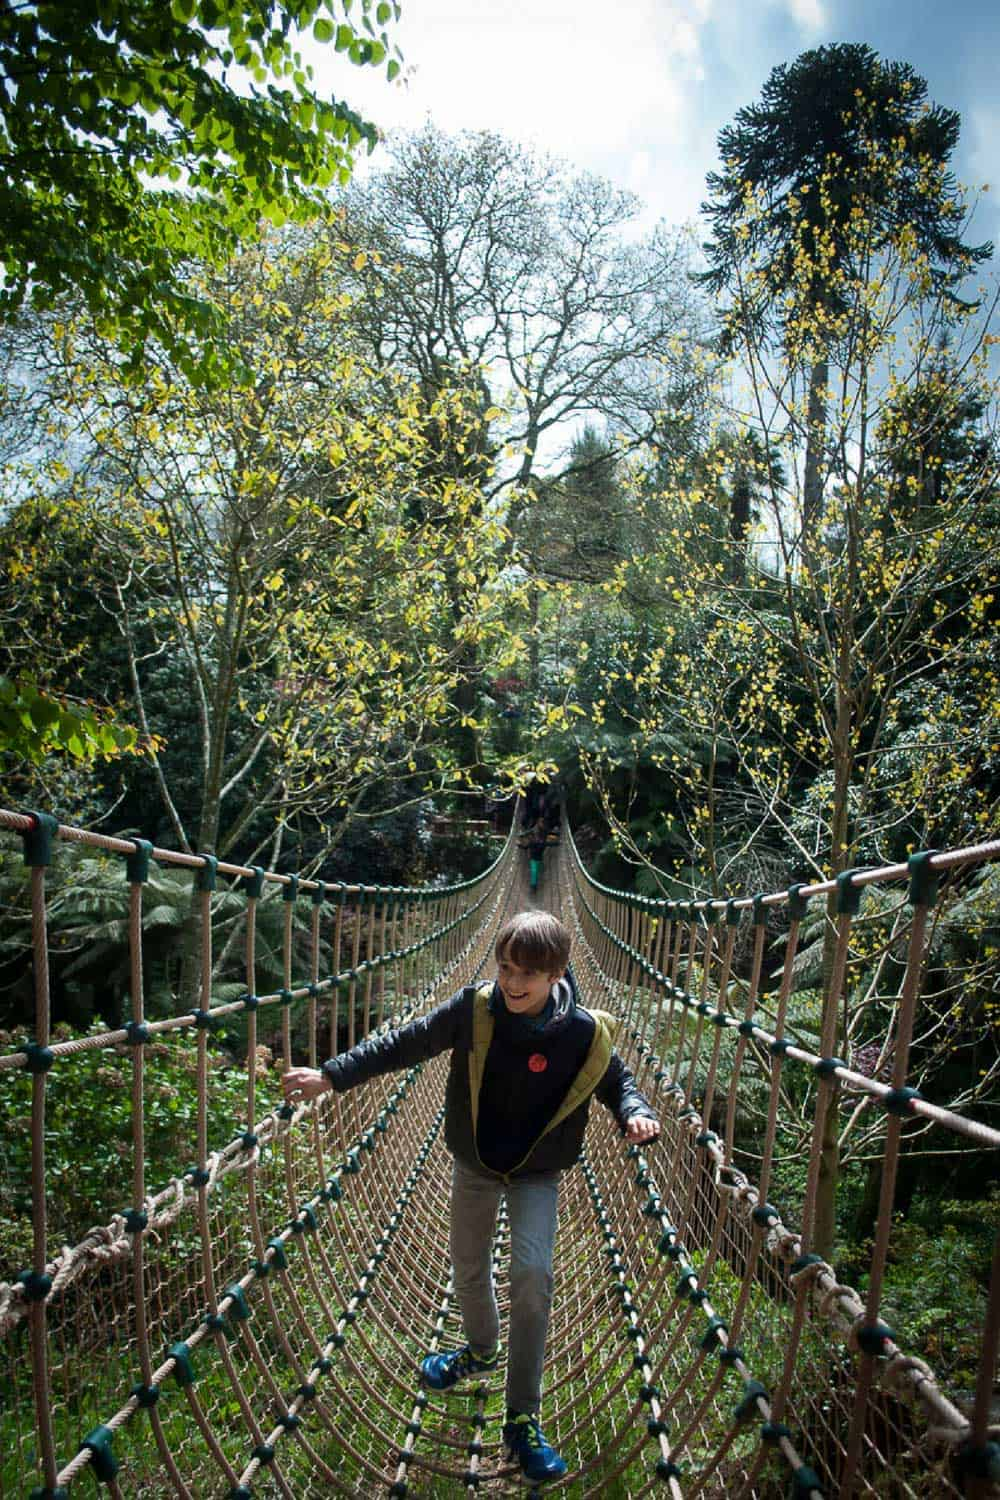 lost-gardens-of-heligan-adventure-rope-bridge-garden-break-greenbank-hotel